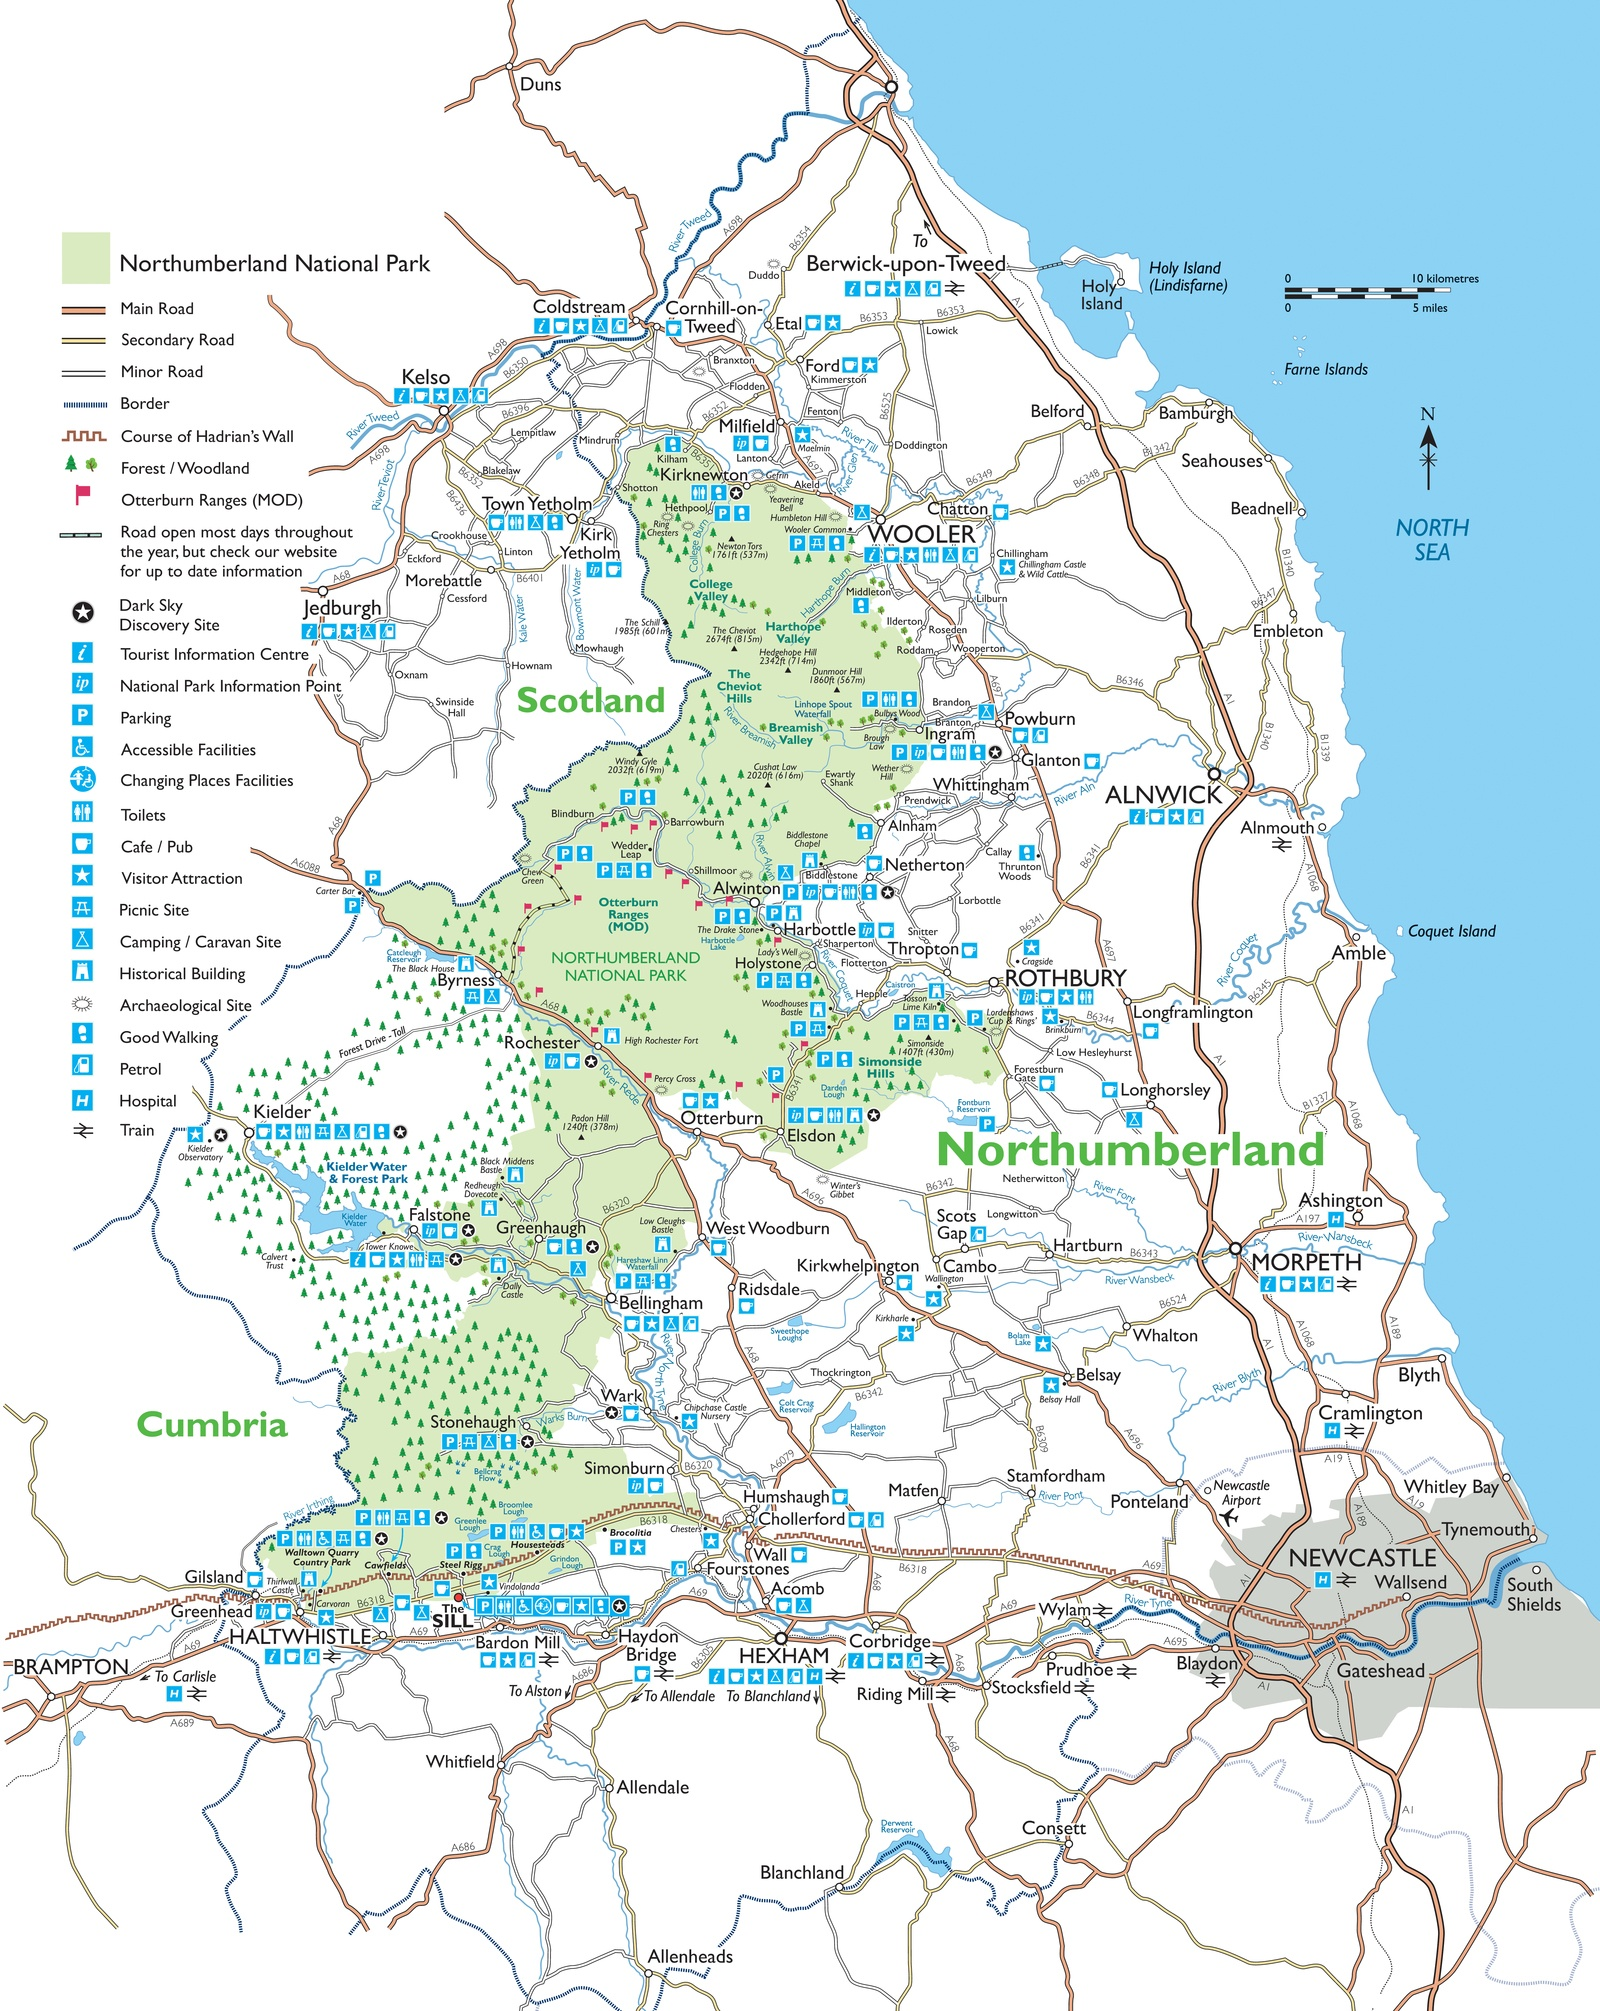 A map showing Northumberland National Park and the north east of England